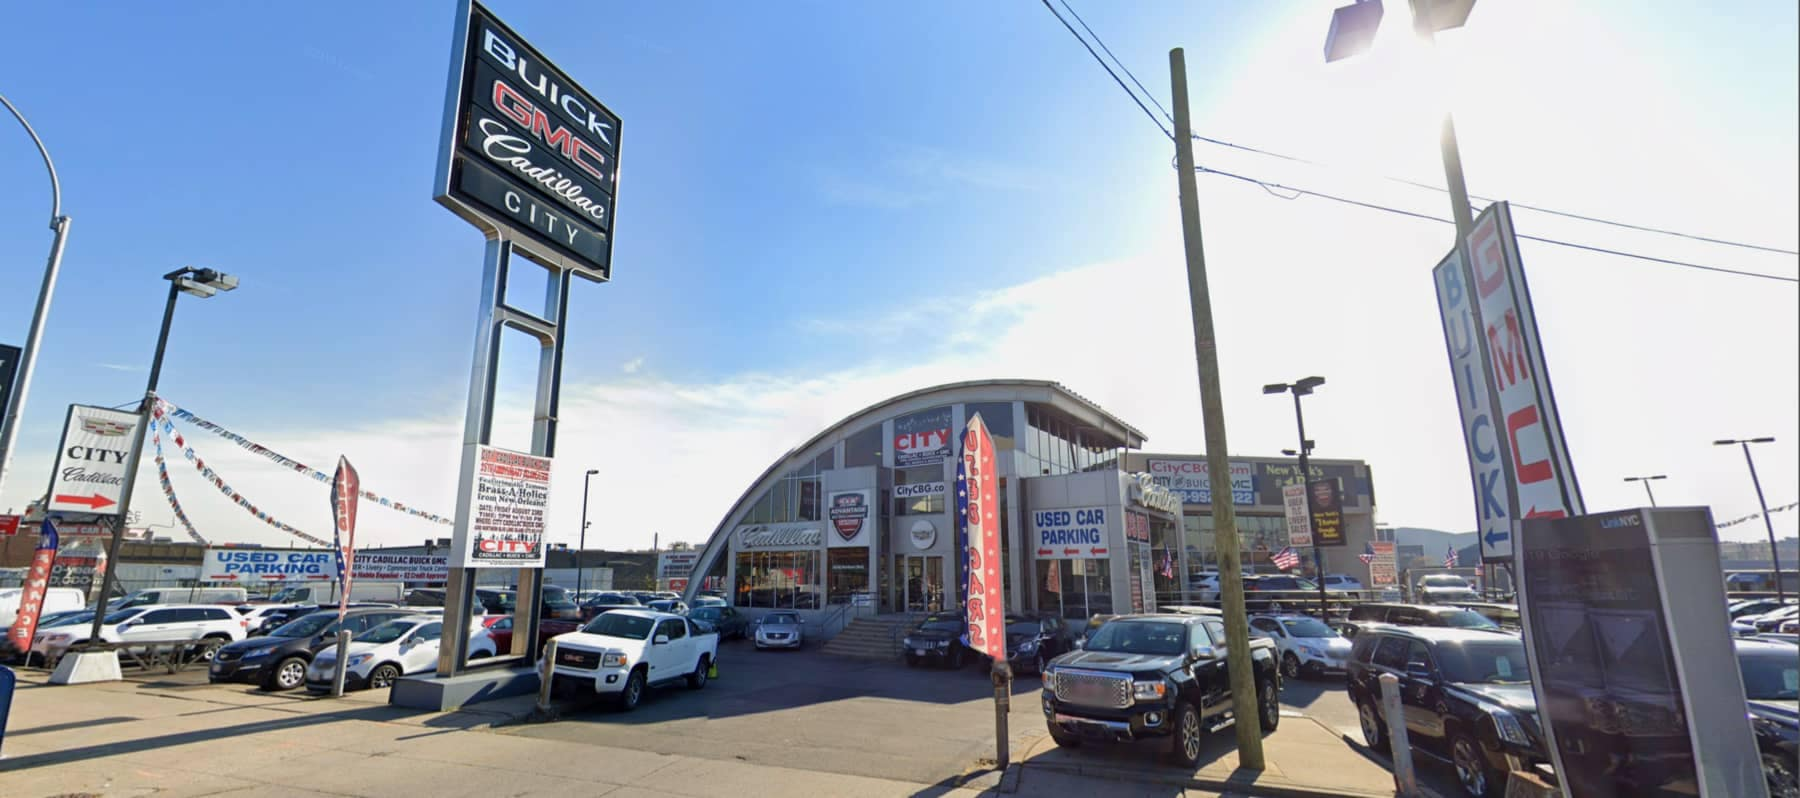 a picture of the front of City Buick GMC during the day